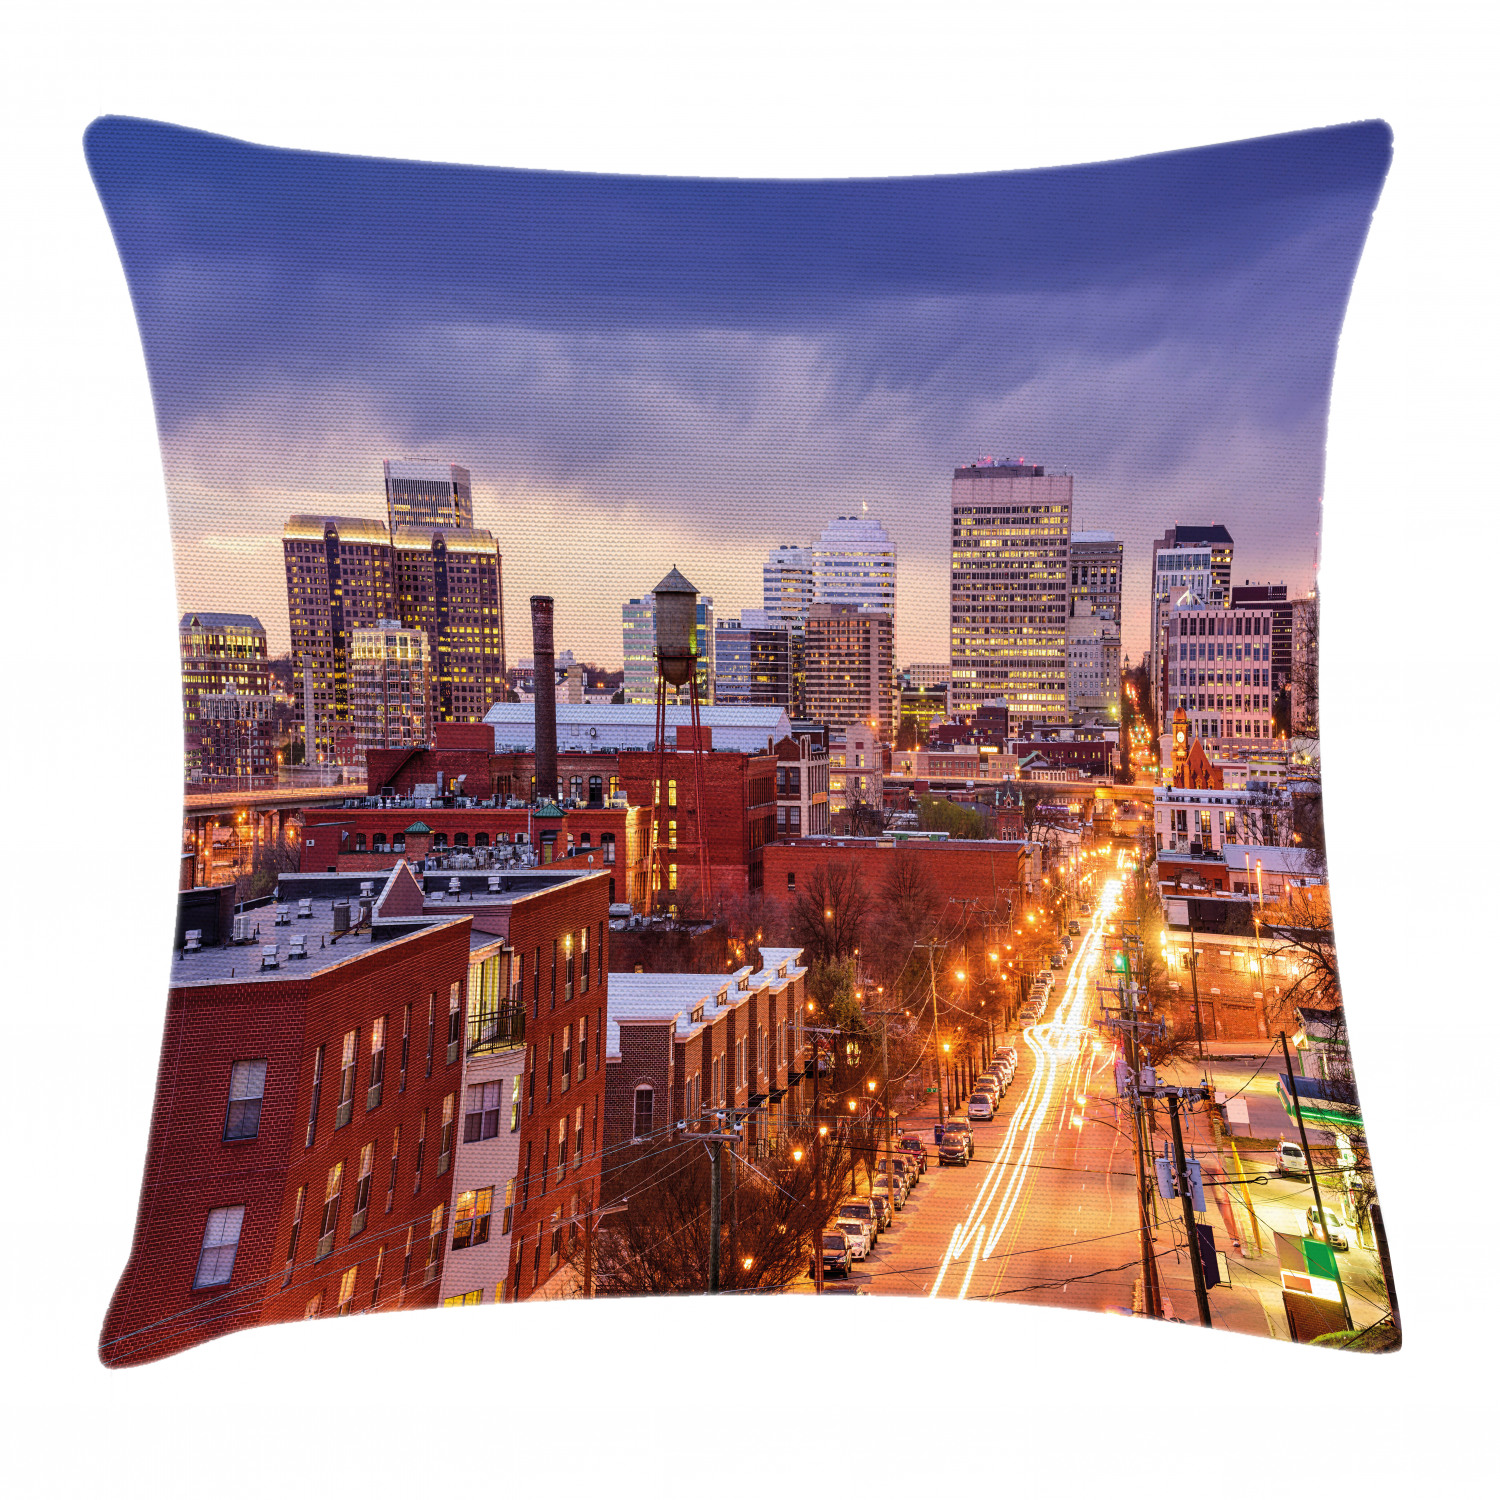 United States Throw Pillow Cases Cushion Covers Home Decor